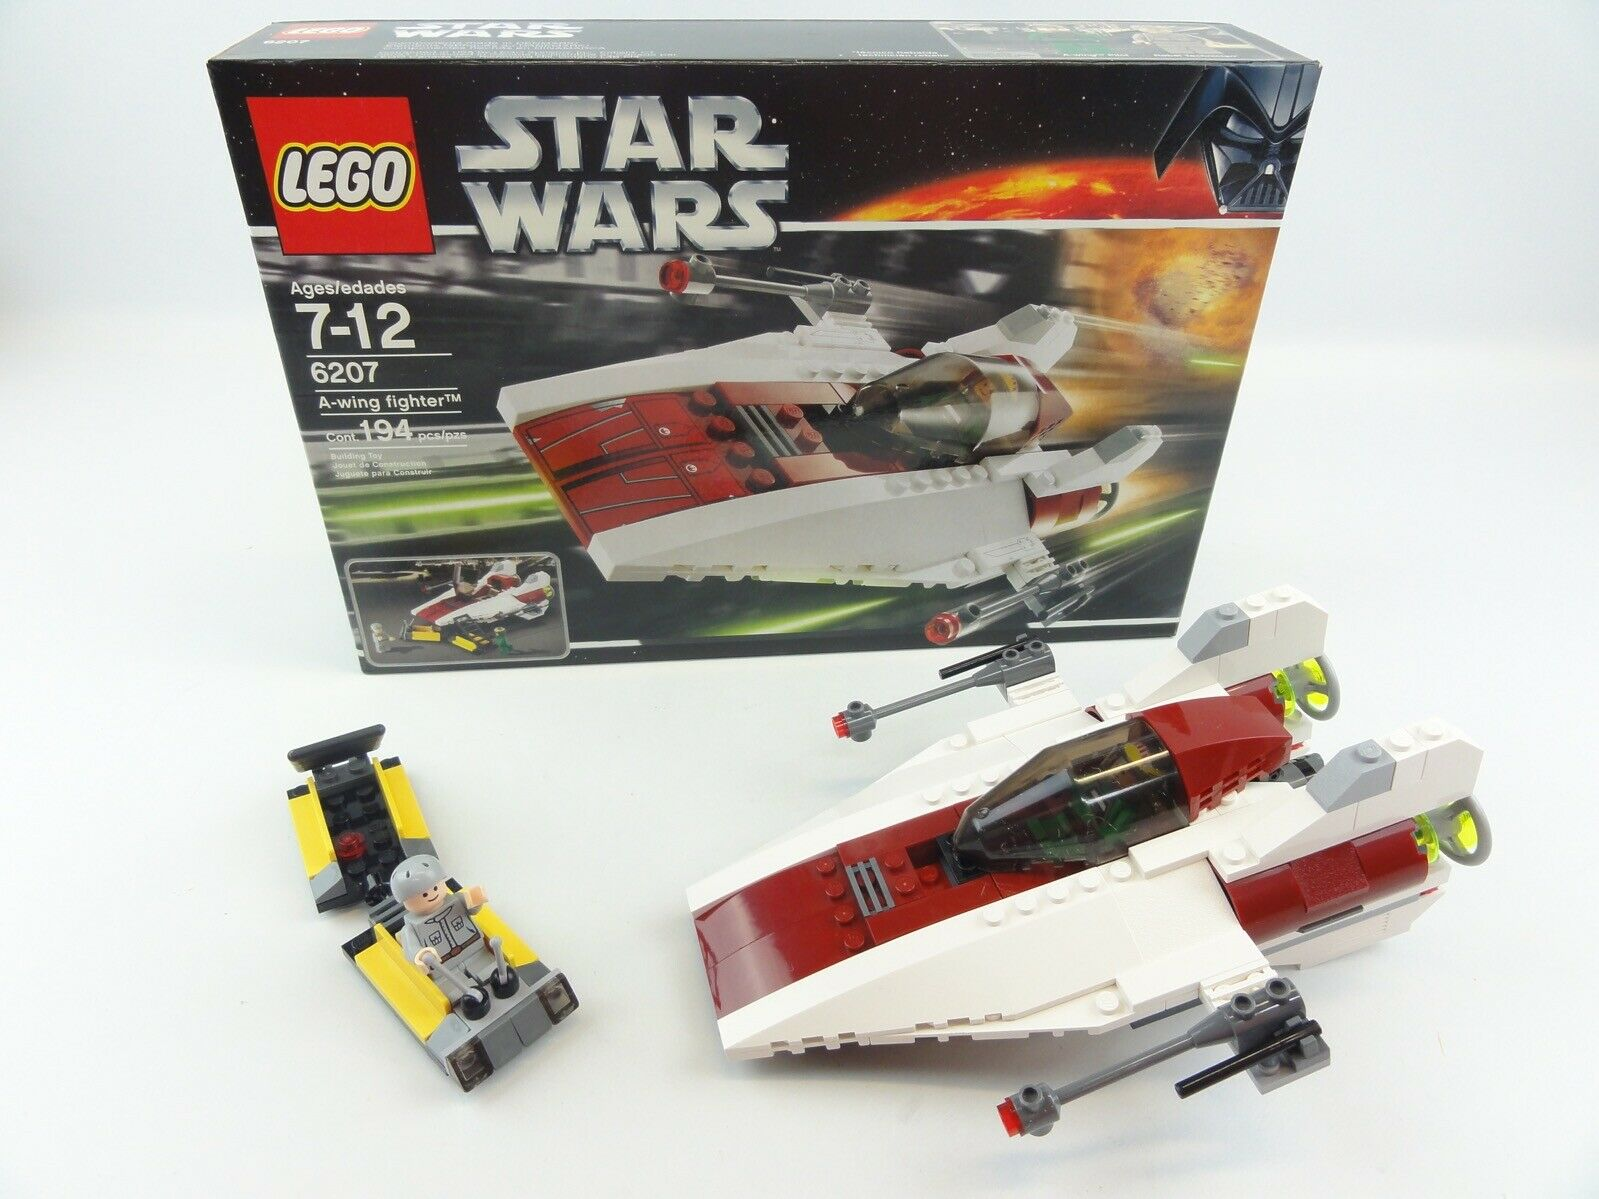 Lego Star Wars A-Wing Fighter 100% COMPLETE Set Manual+Box Manual+Box Manual+Box Included 78b53d